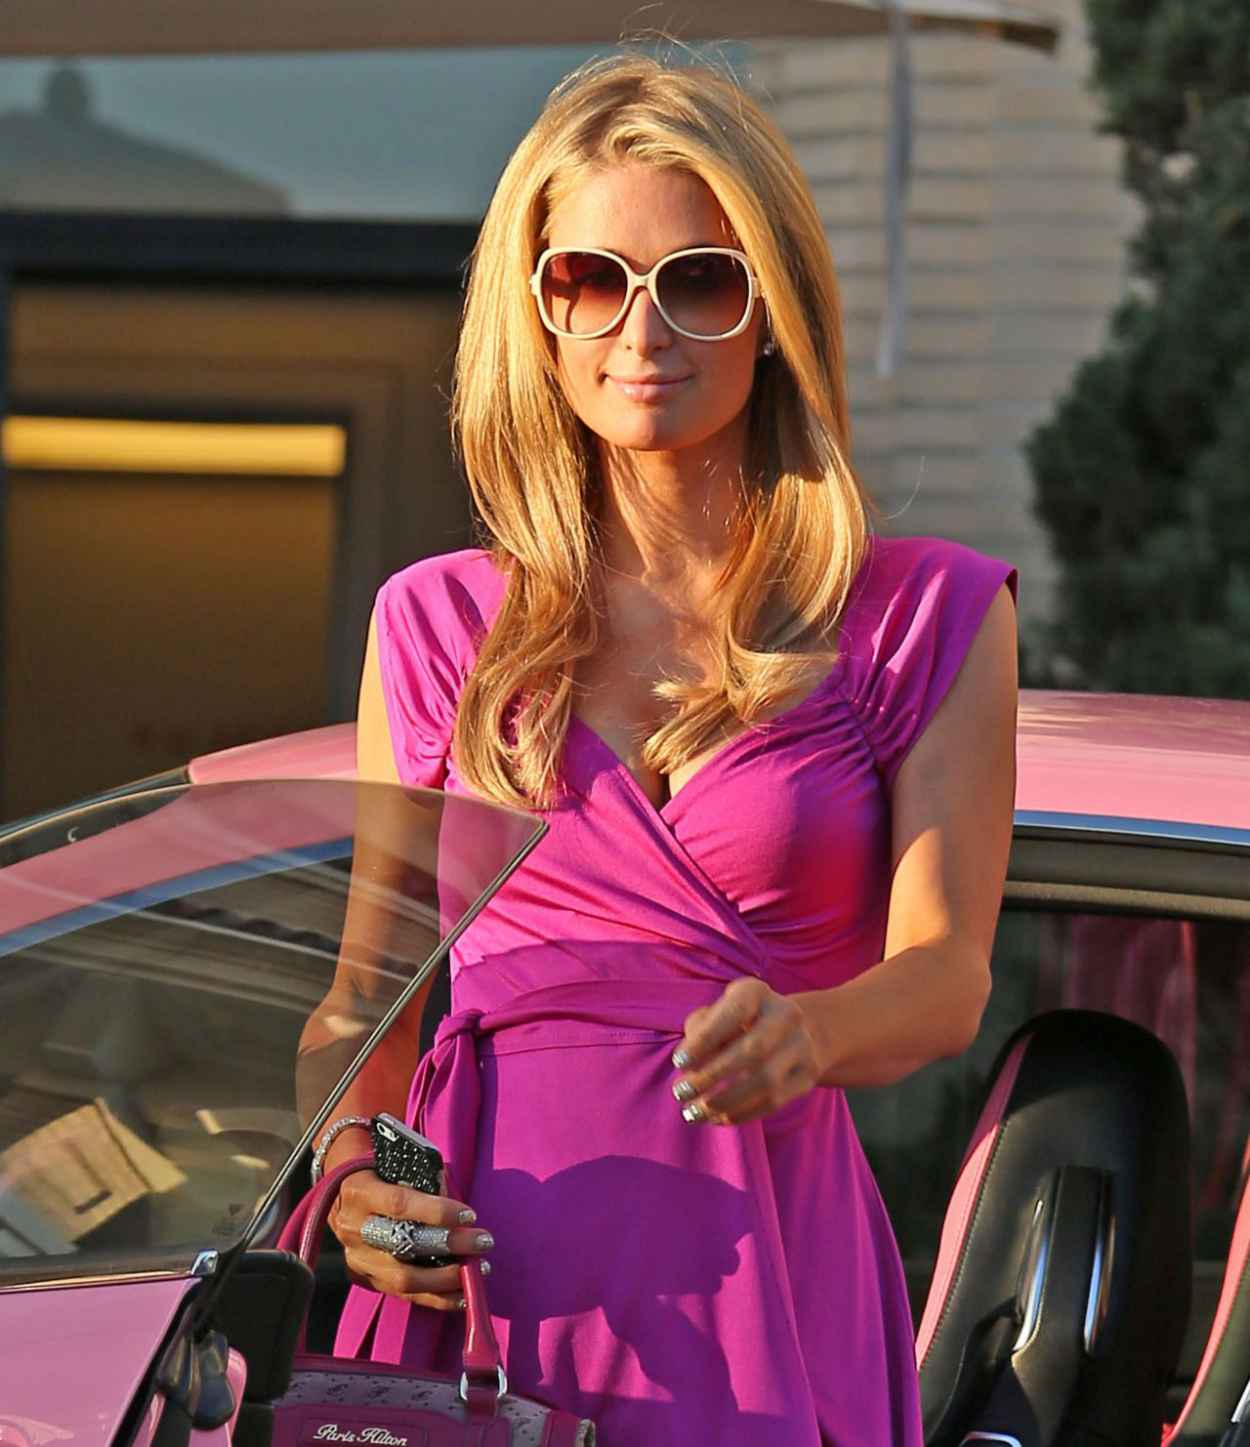 Paris Hilton at Barneys for Some Shopping Driving Her Pink Bentley in Los Angeles, February 2015-1